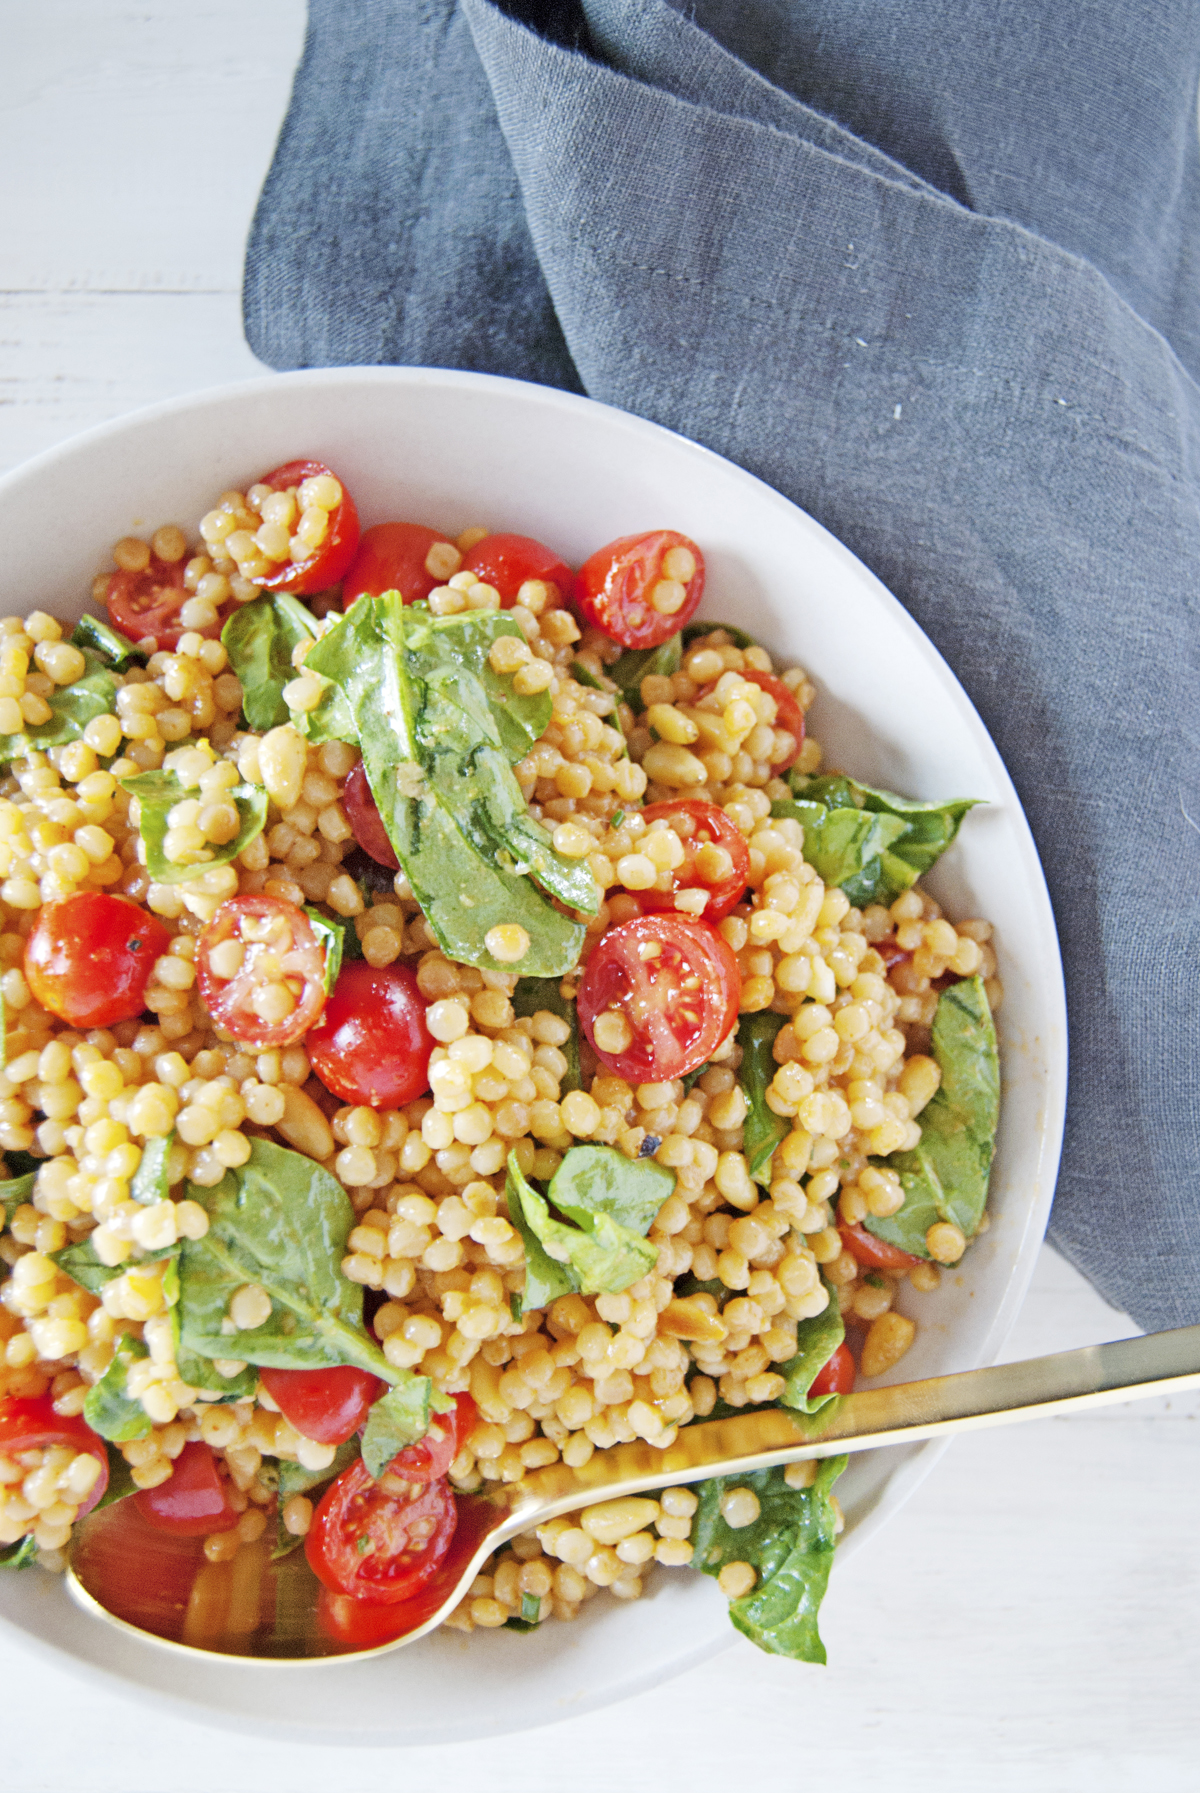 Toasted Pearl Couscous Salad With Lemon Dijon Vinaigrette The Charming Detroiter